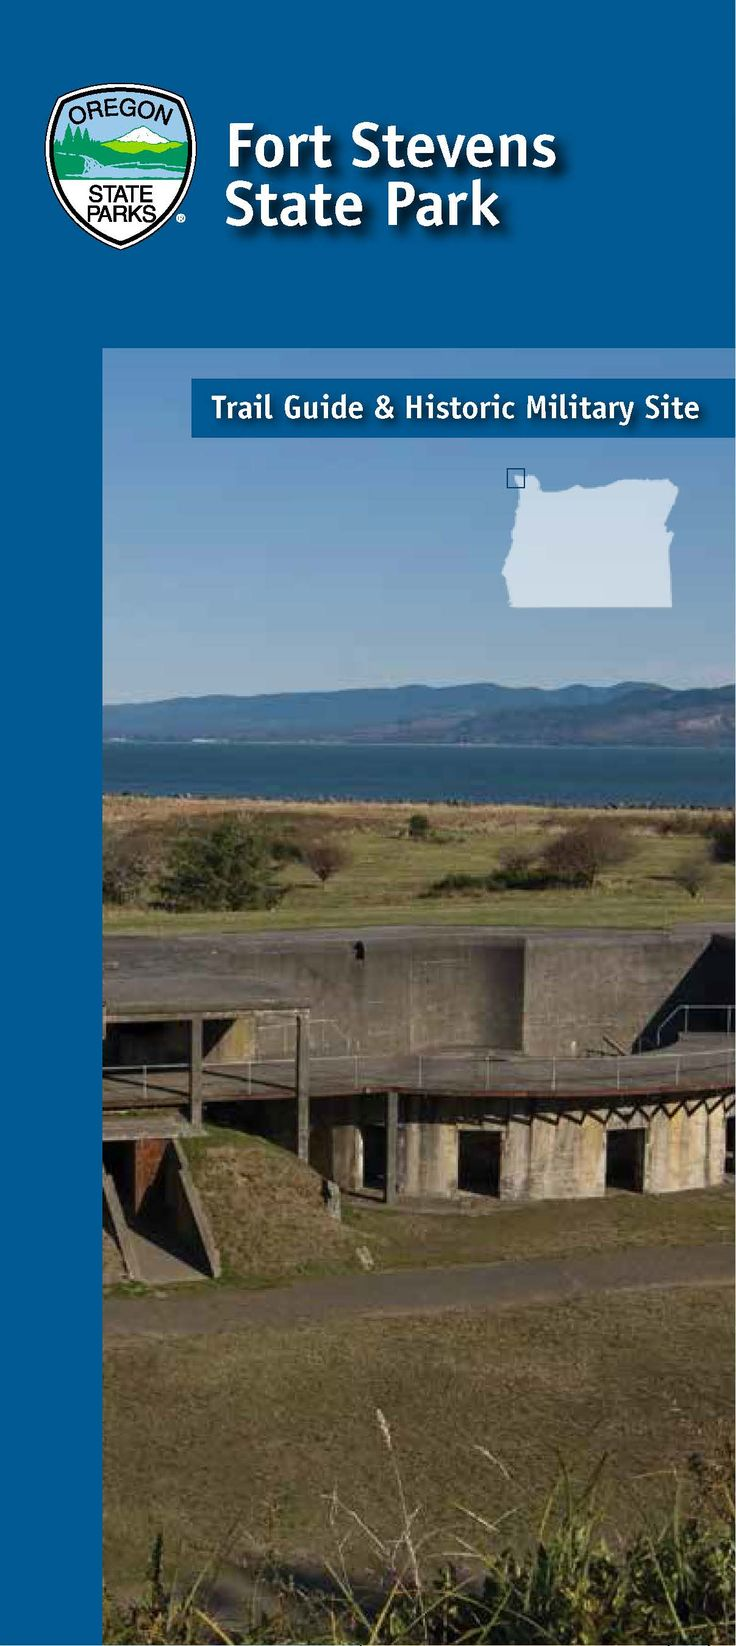 Fort Stevens State Park : trail guide & historic military site, by the Oregon State Parks and Recreation Department